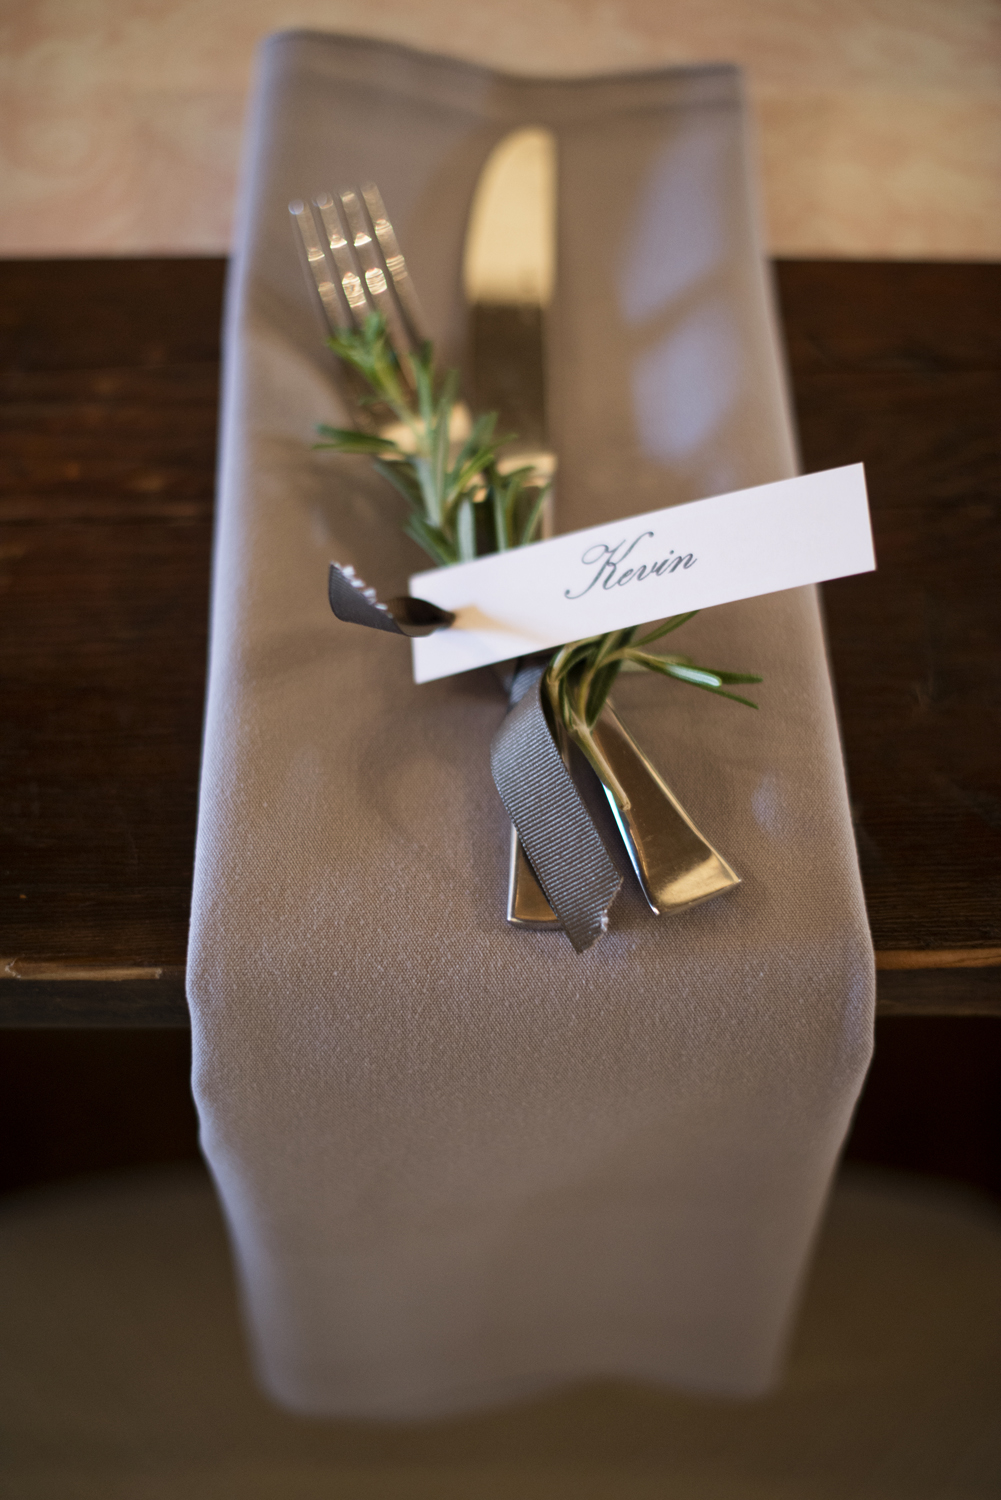 Gray wedding theme with sprigs of rosemary for nametags